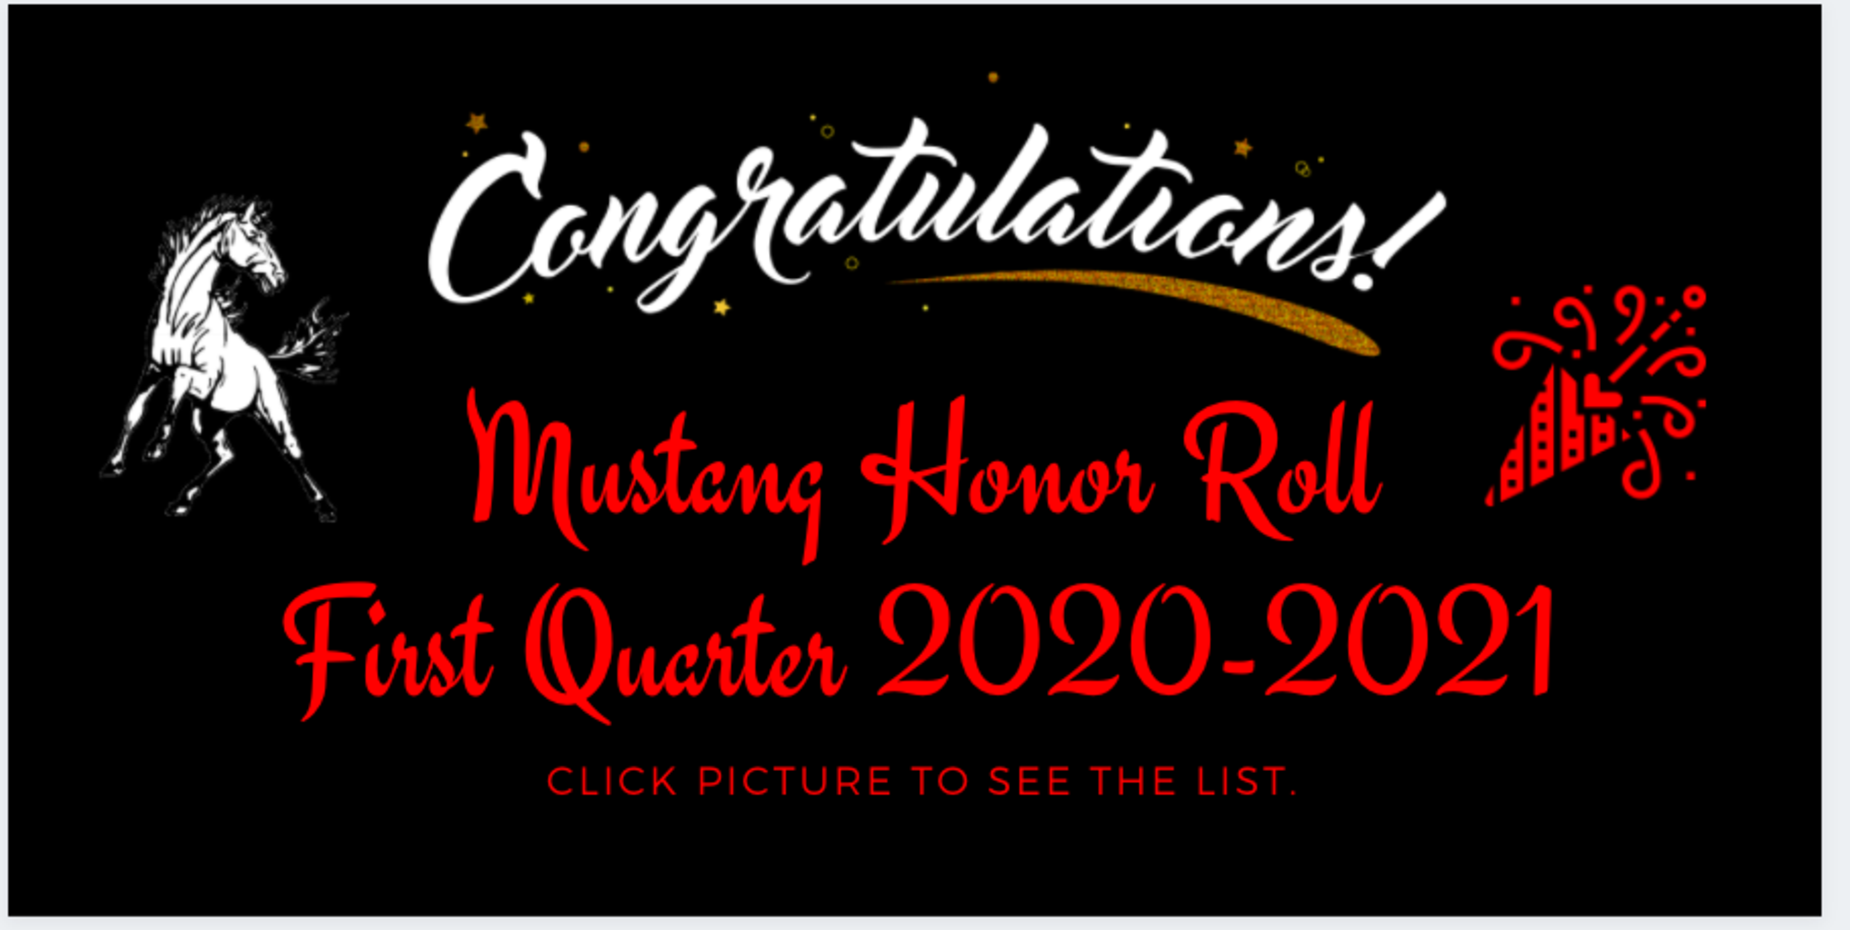 image shows bucking mustang and awards information.